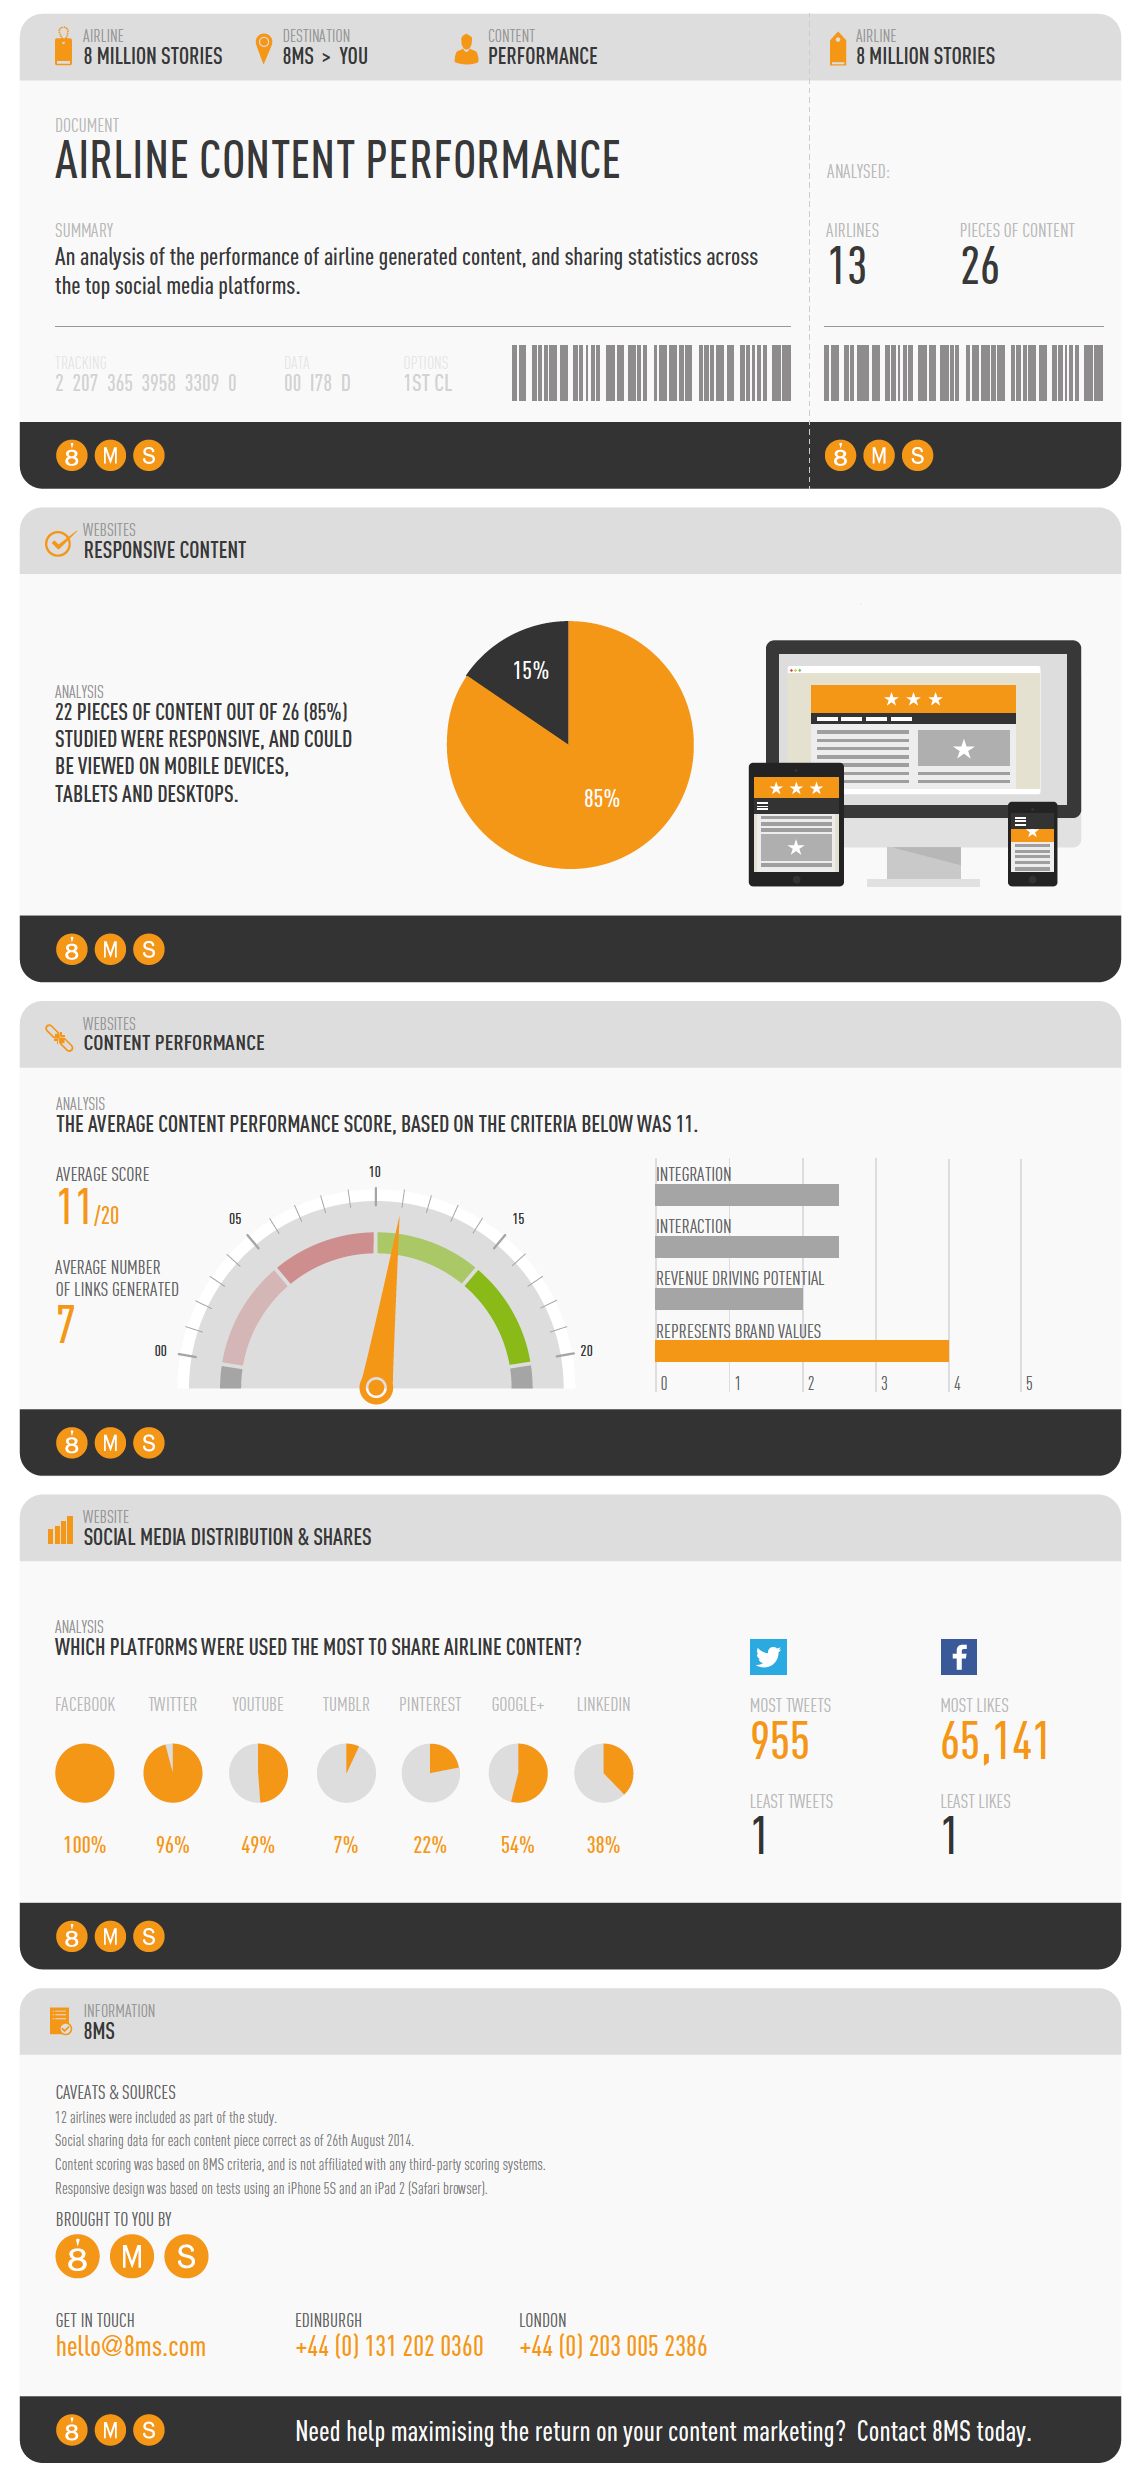 Airline Content Performance Study - INFOGRAPHIC